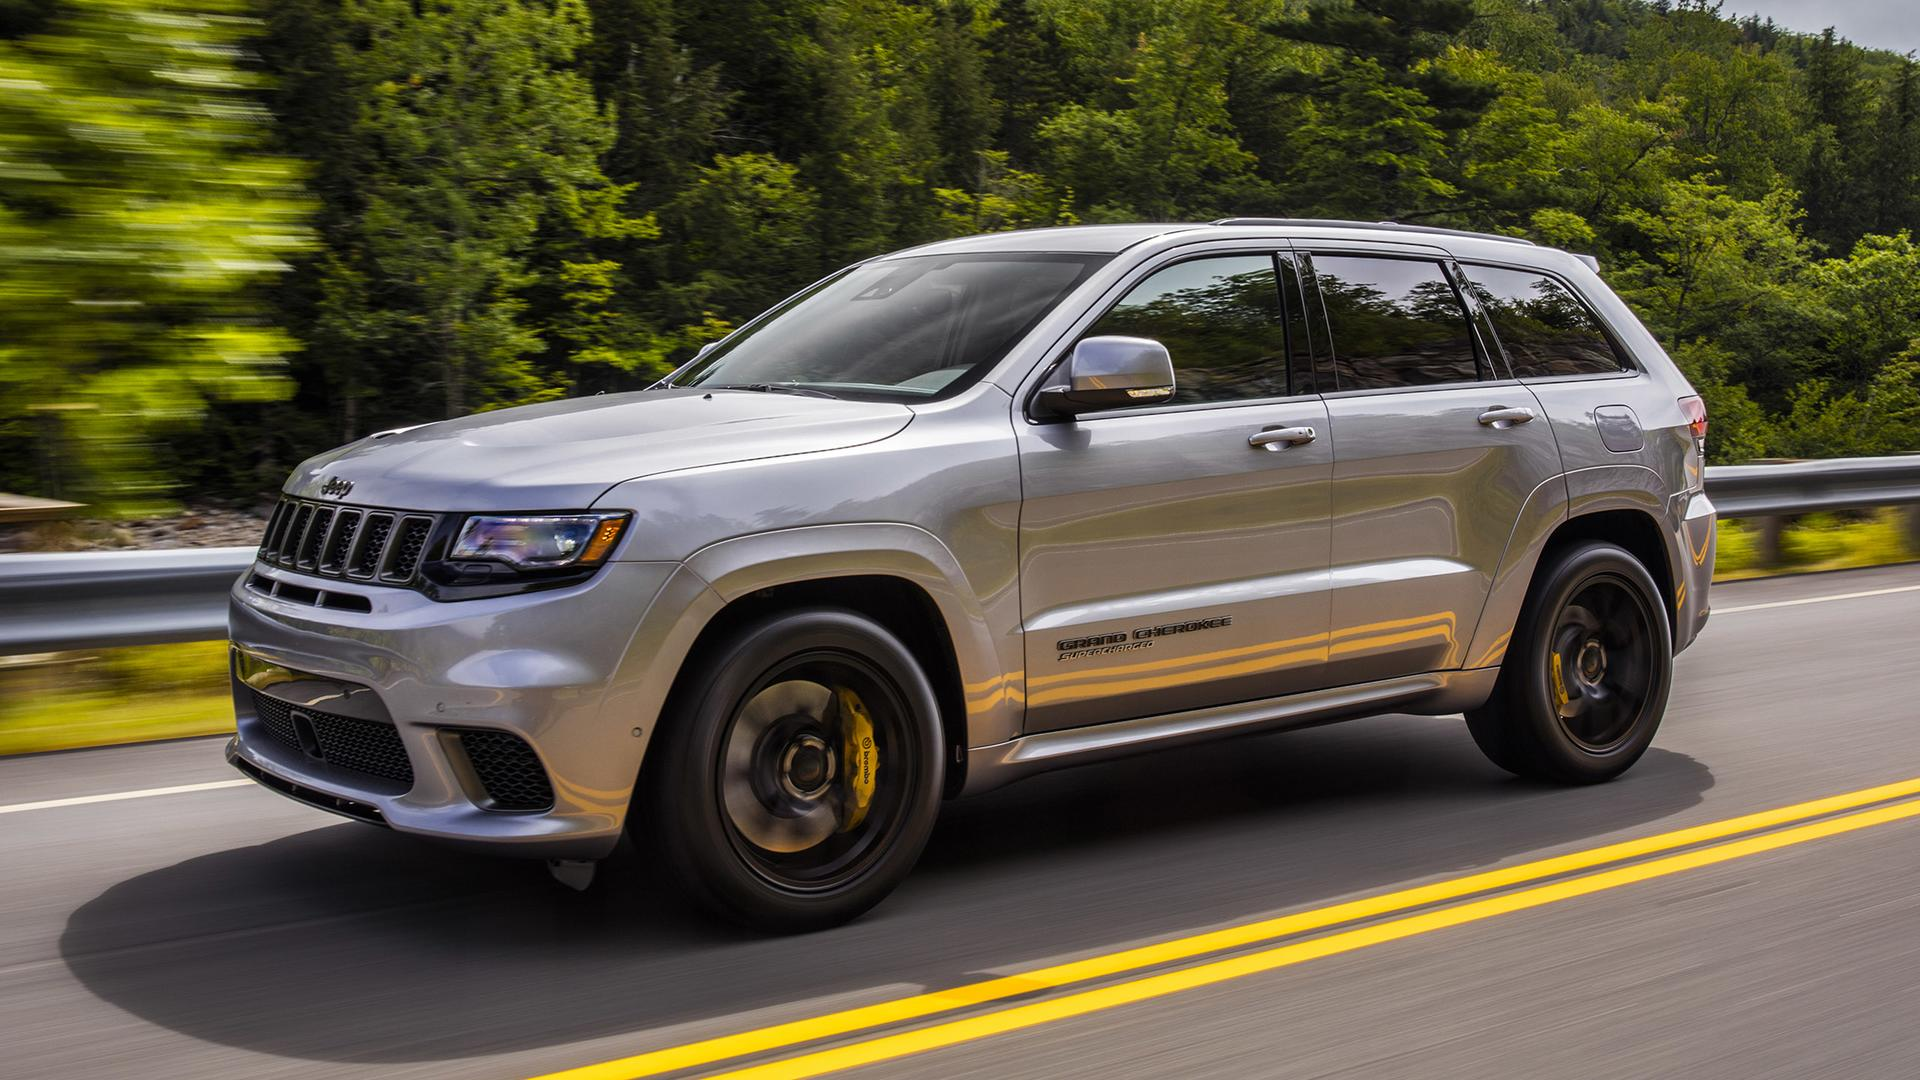 Jeep Grand Cherokee Trackhawk News and Reviews | Motor1.com